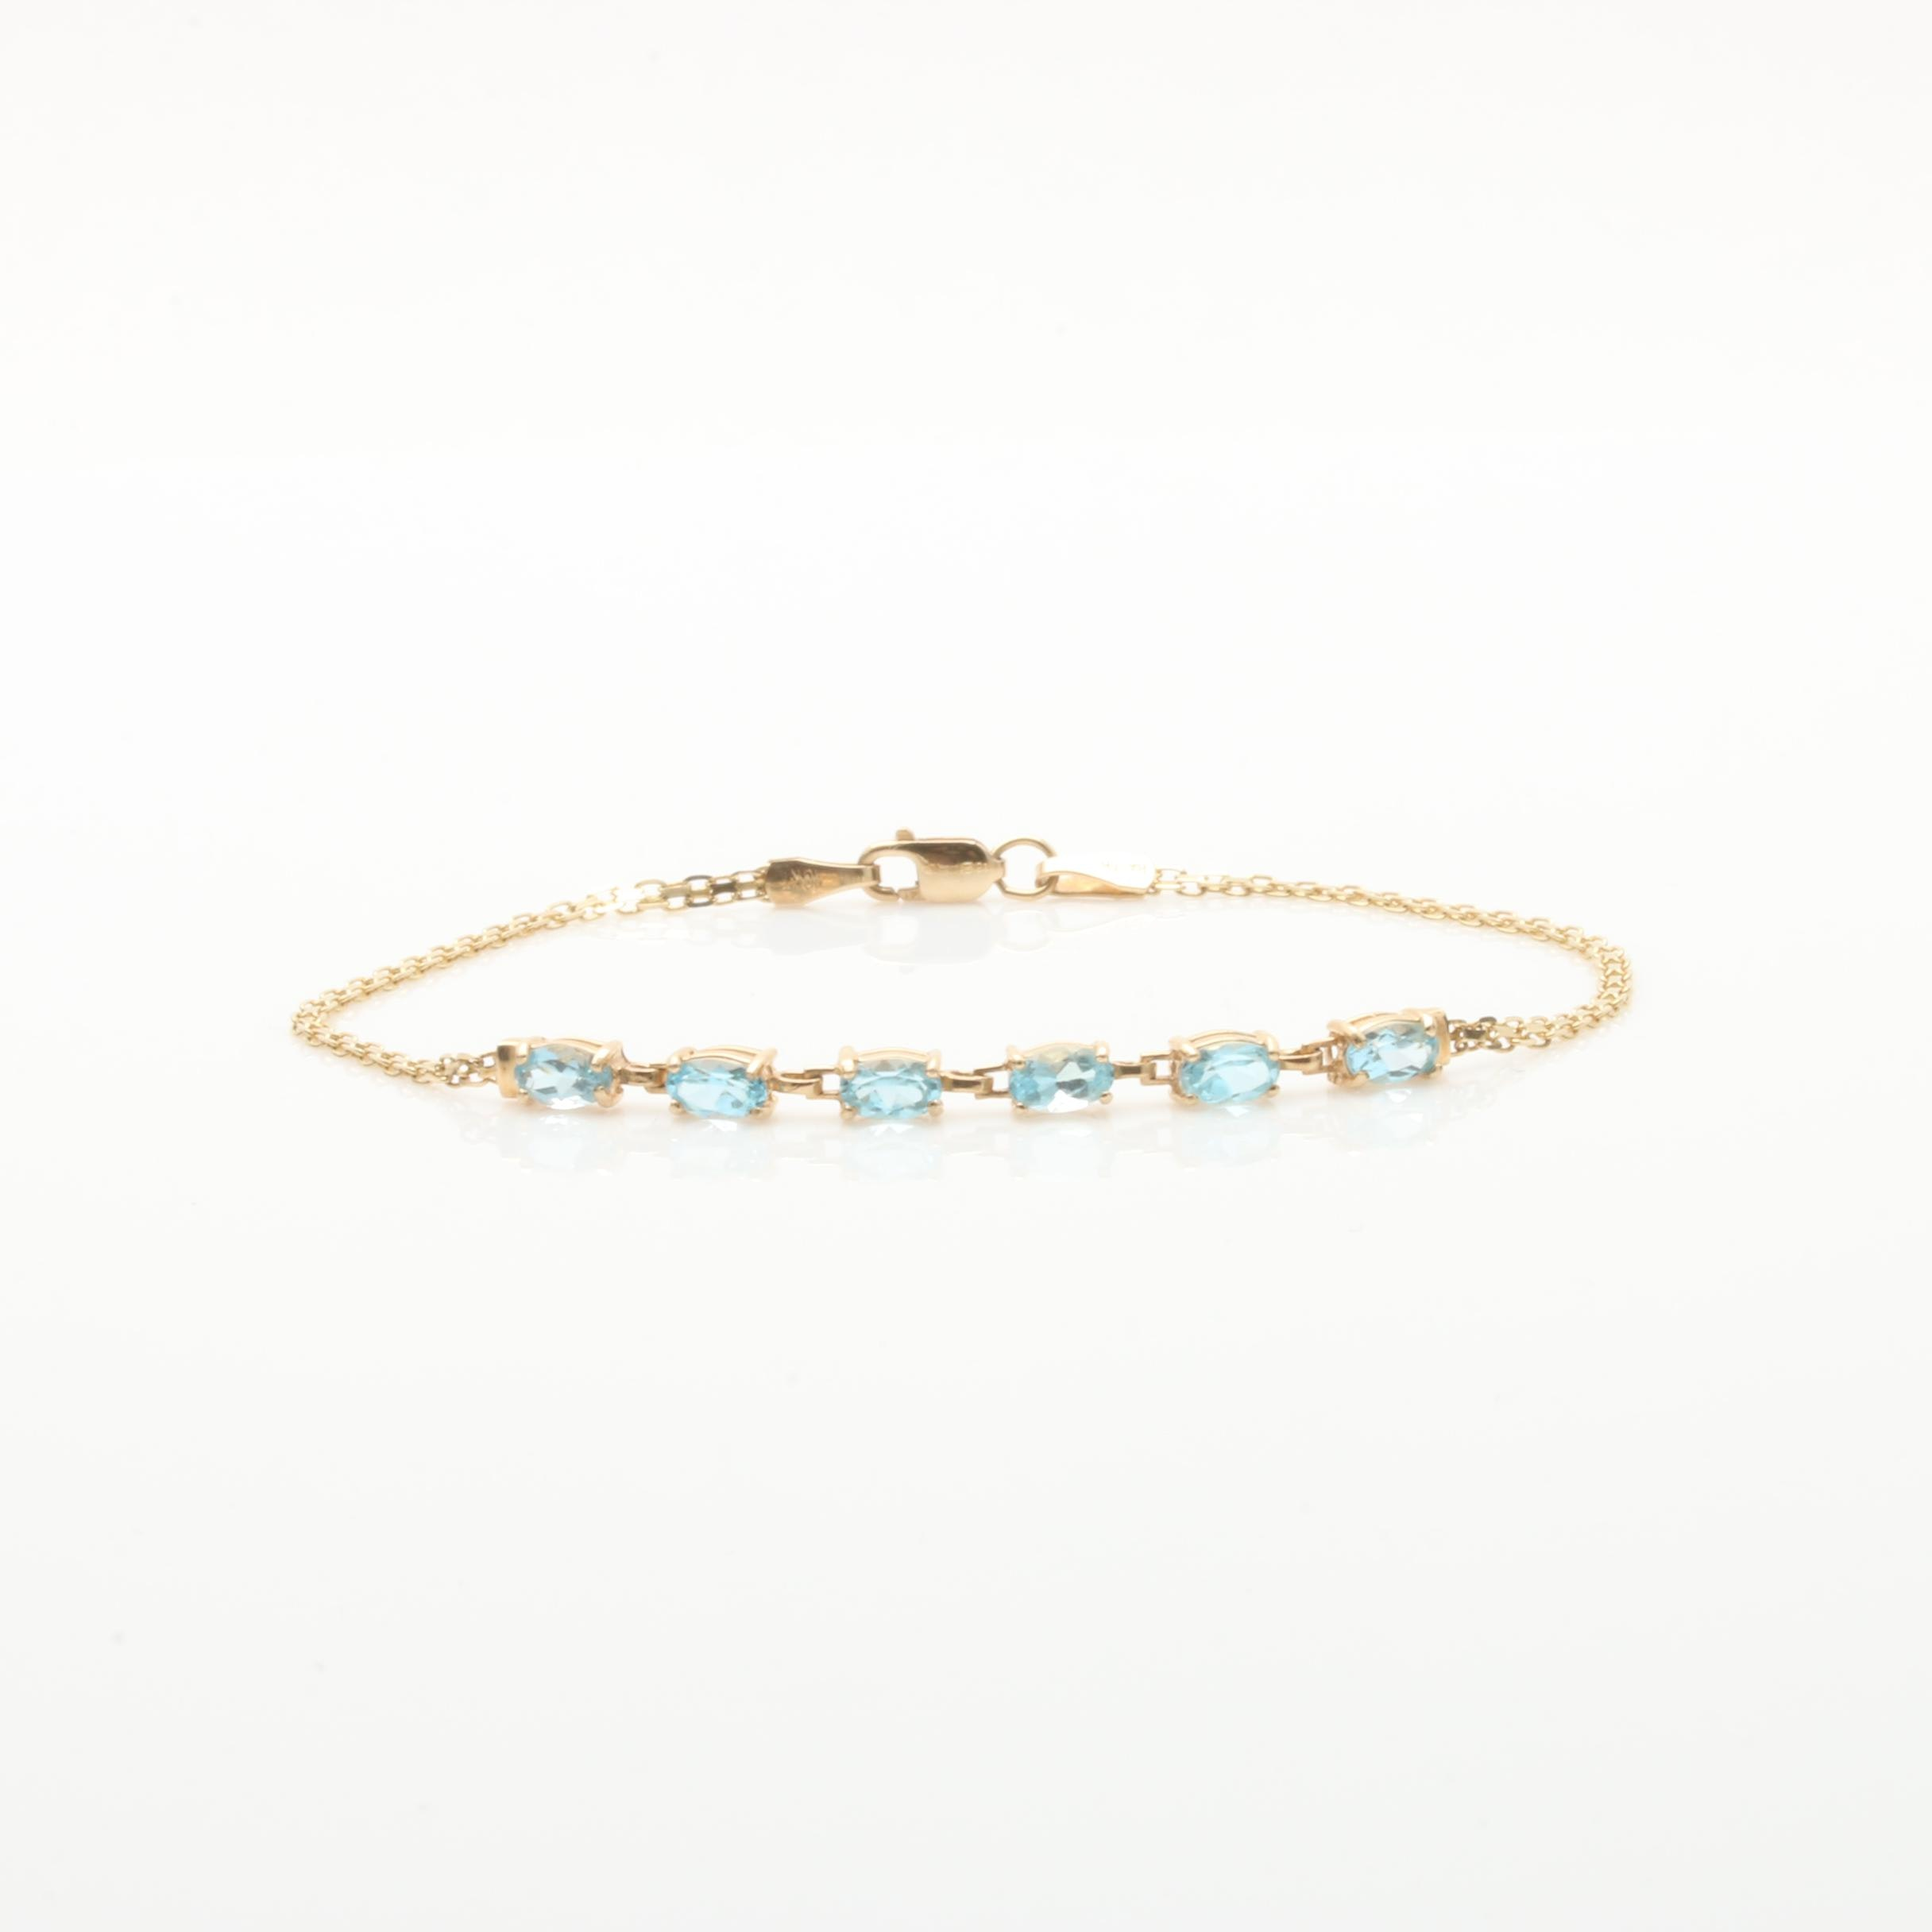 10K Yellow Gold Topaz Bracelet